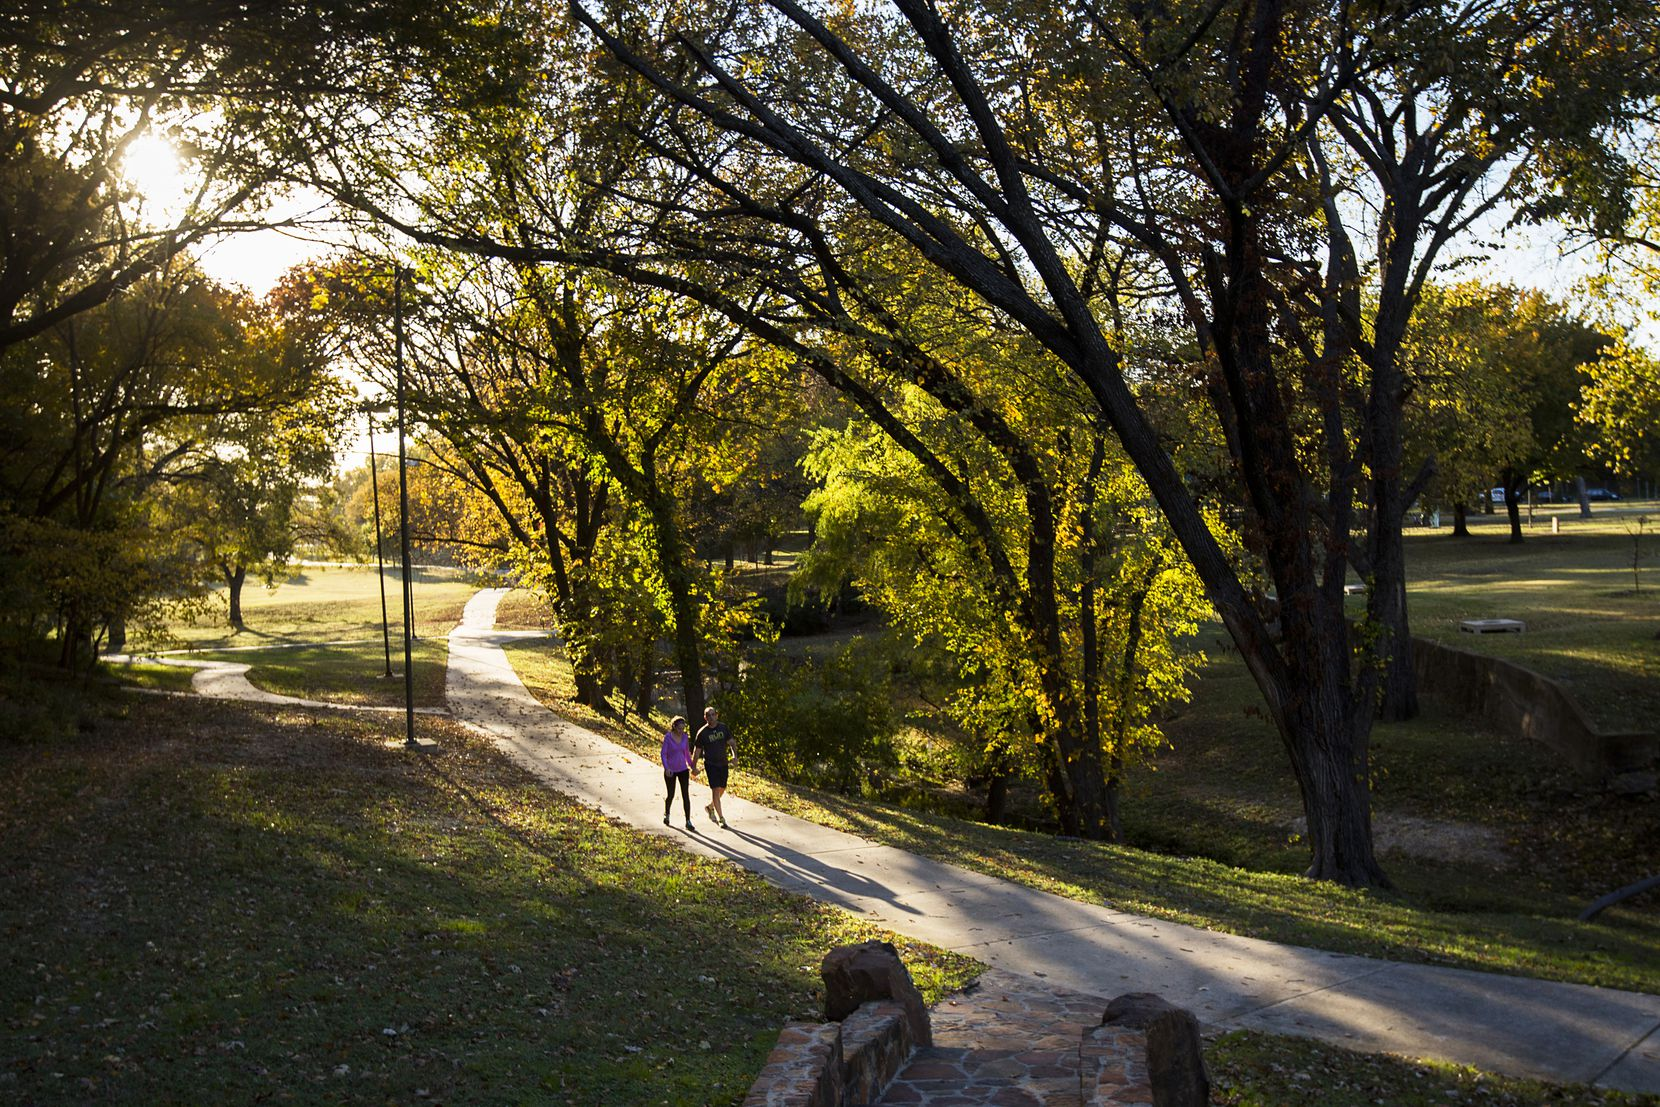 Once the ballpark plan was up for approval, many park users who love the peace and solitude found amid Reverchon's greenspaces and historic stonework expressed opposition.